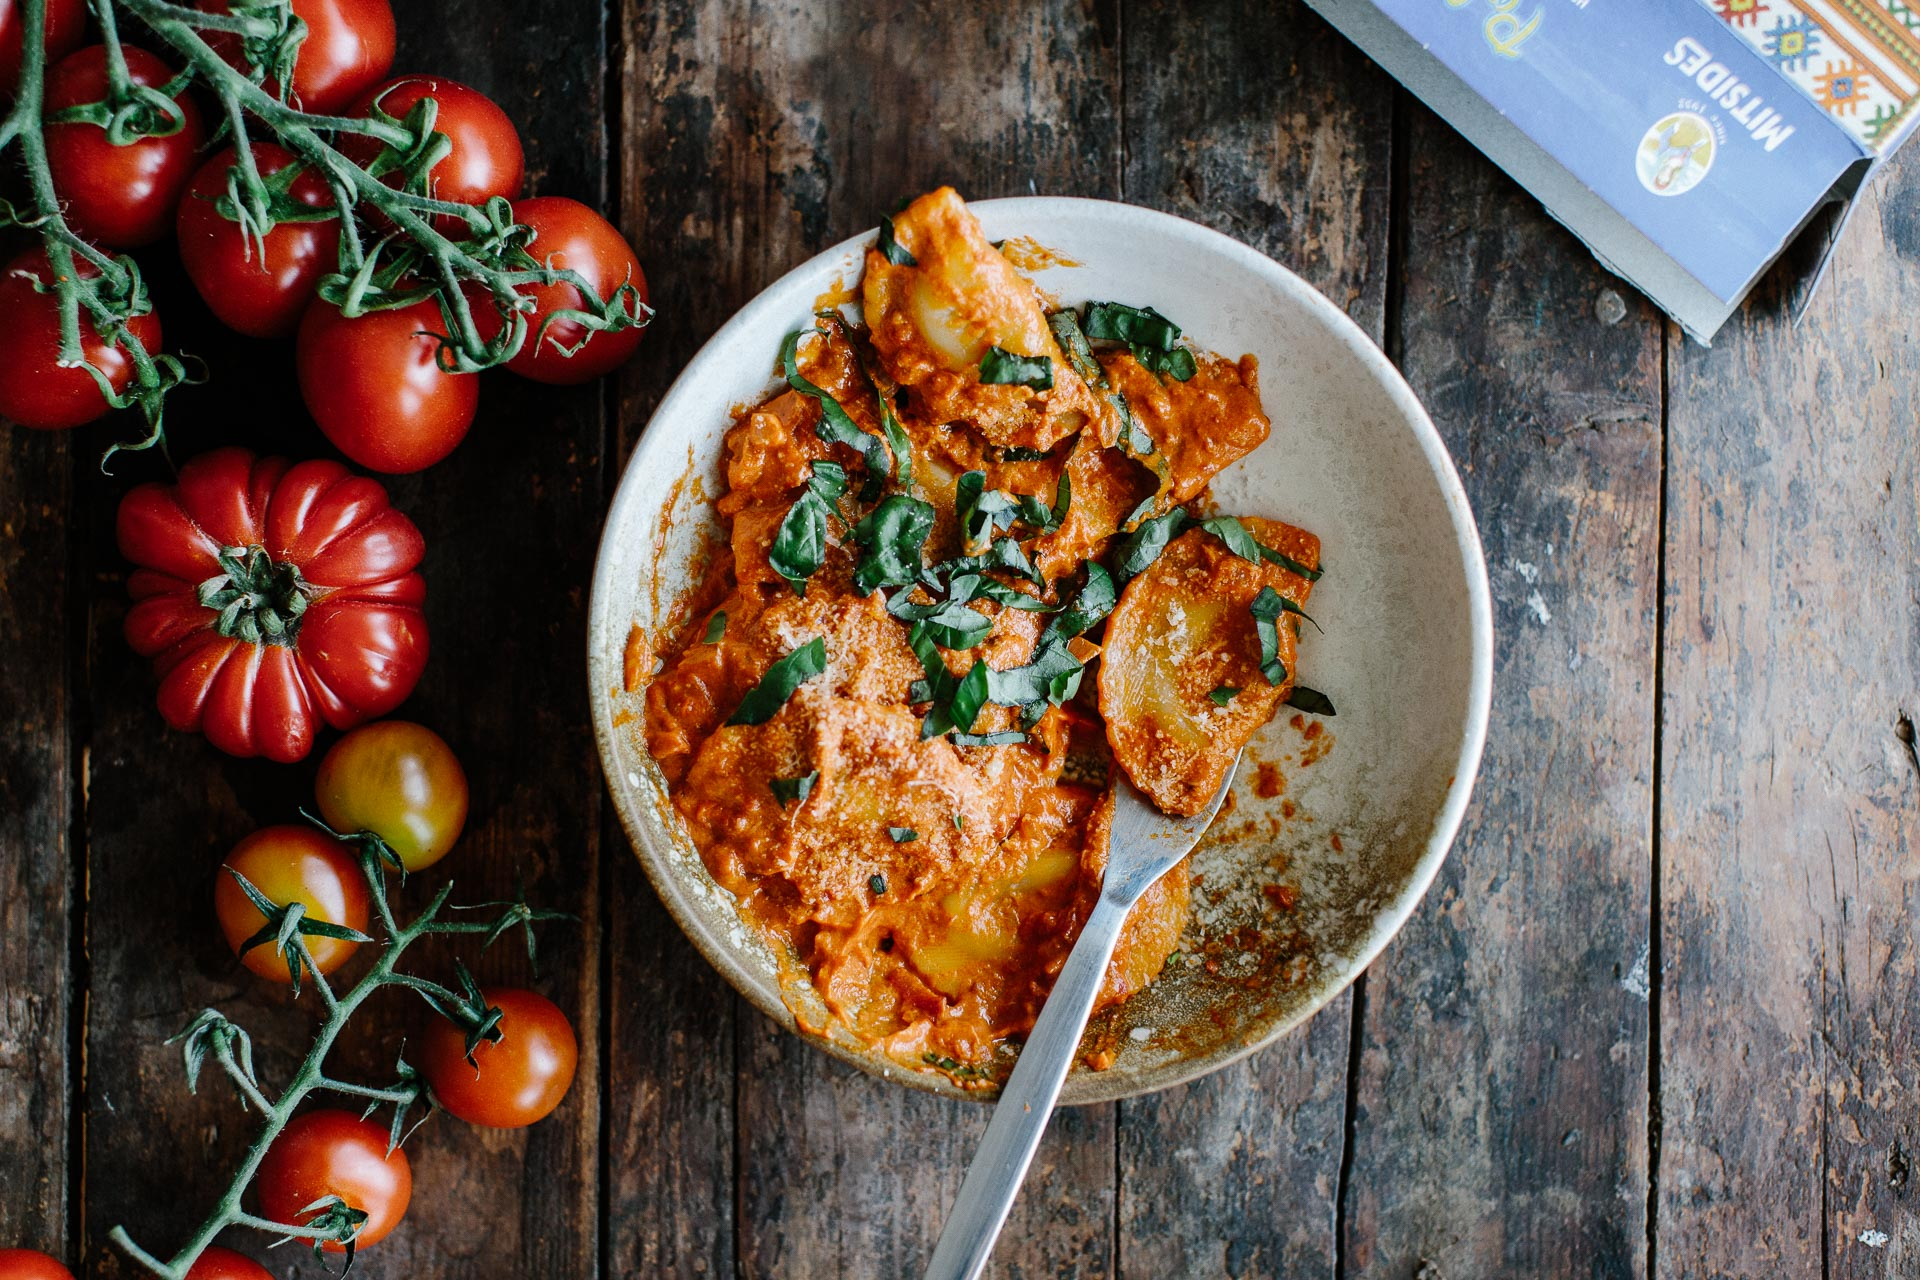 Traditional Cypriot Halloumi Ravioli with Creamy Tomato Sauce